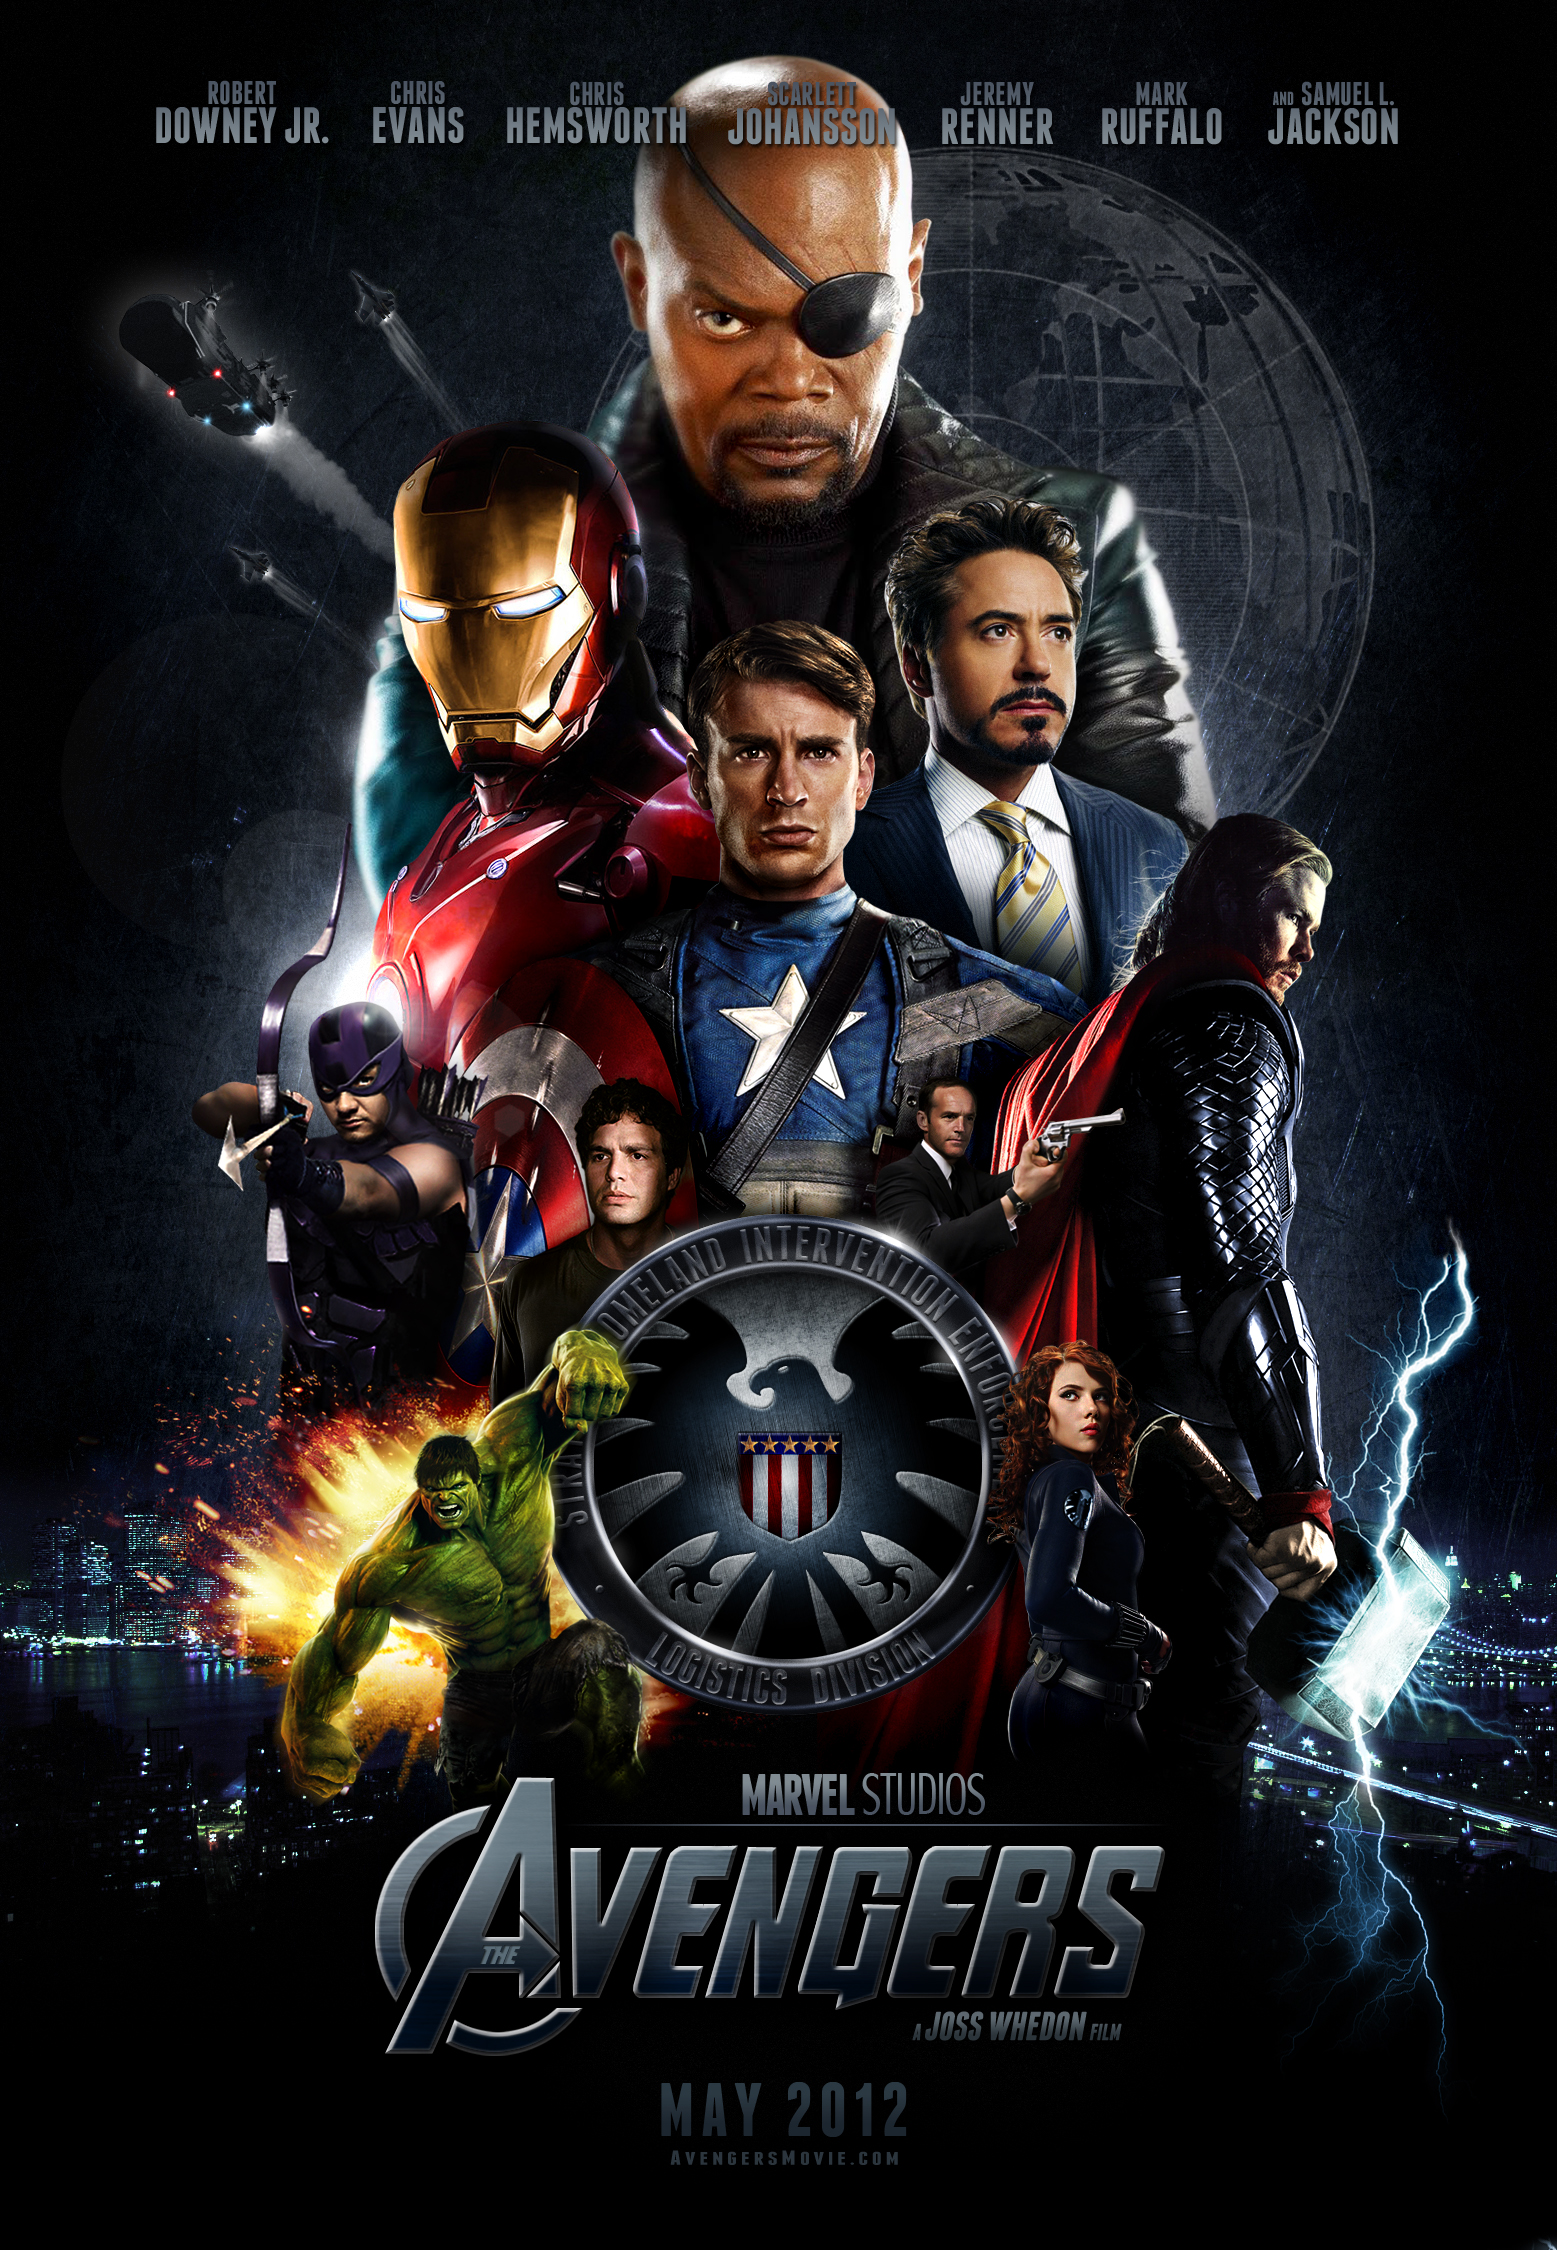 The Avengers Poster The Avengers Photo 24746041 Fanpop